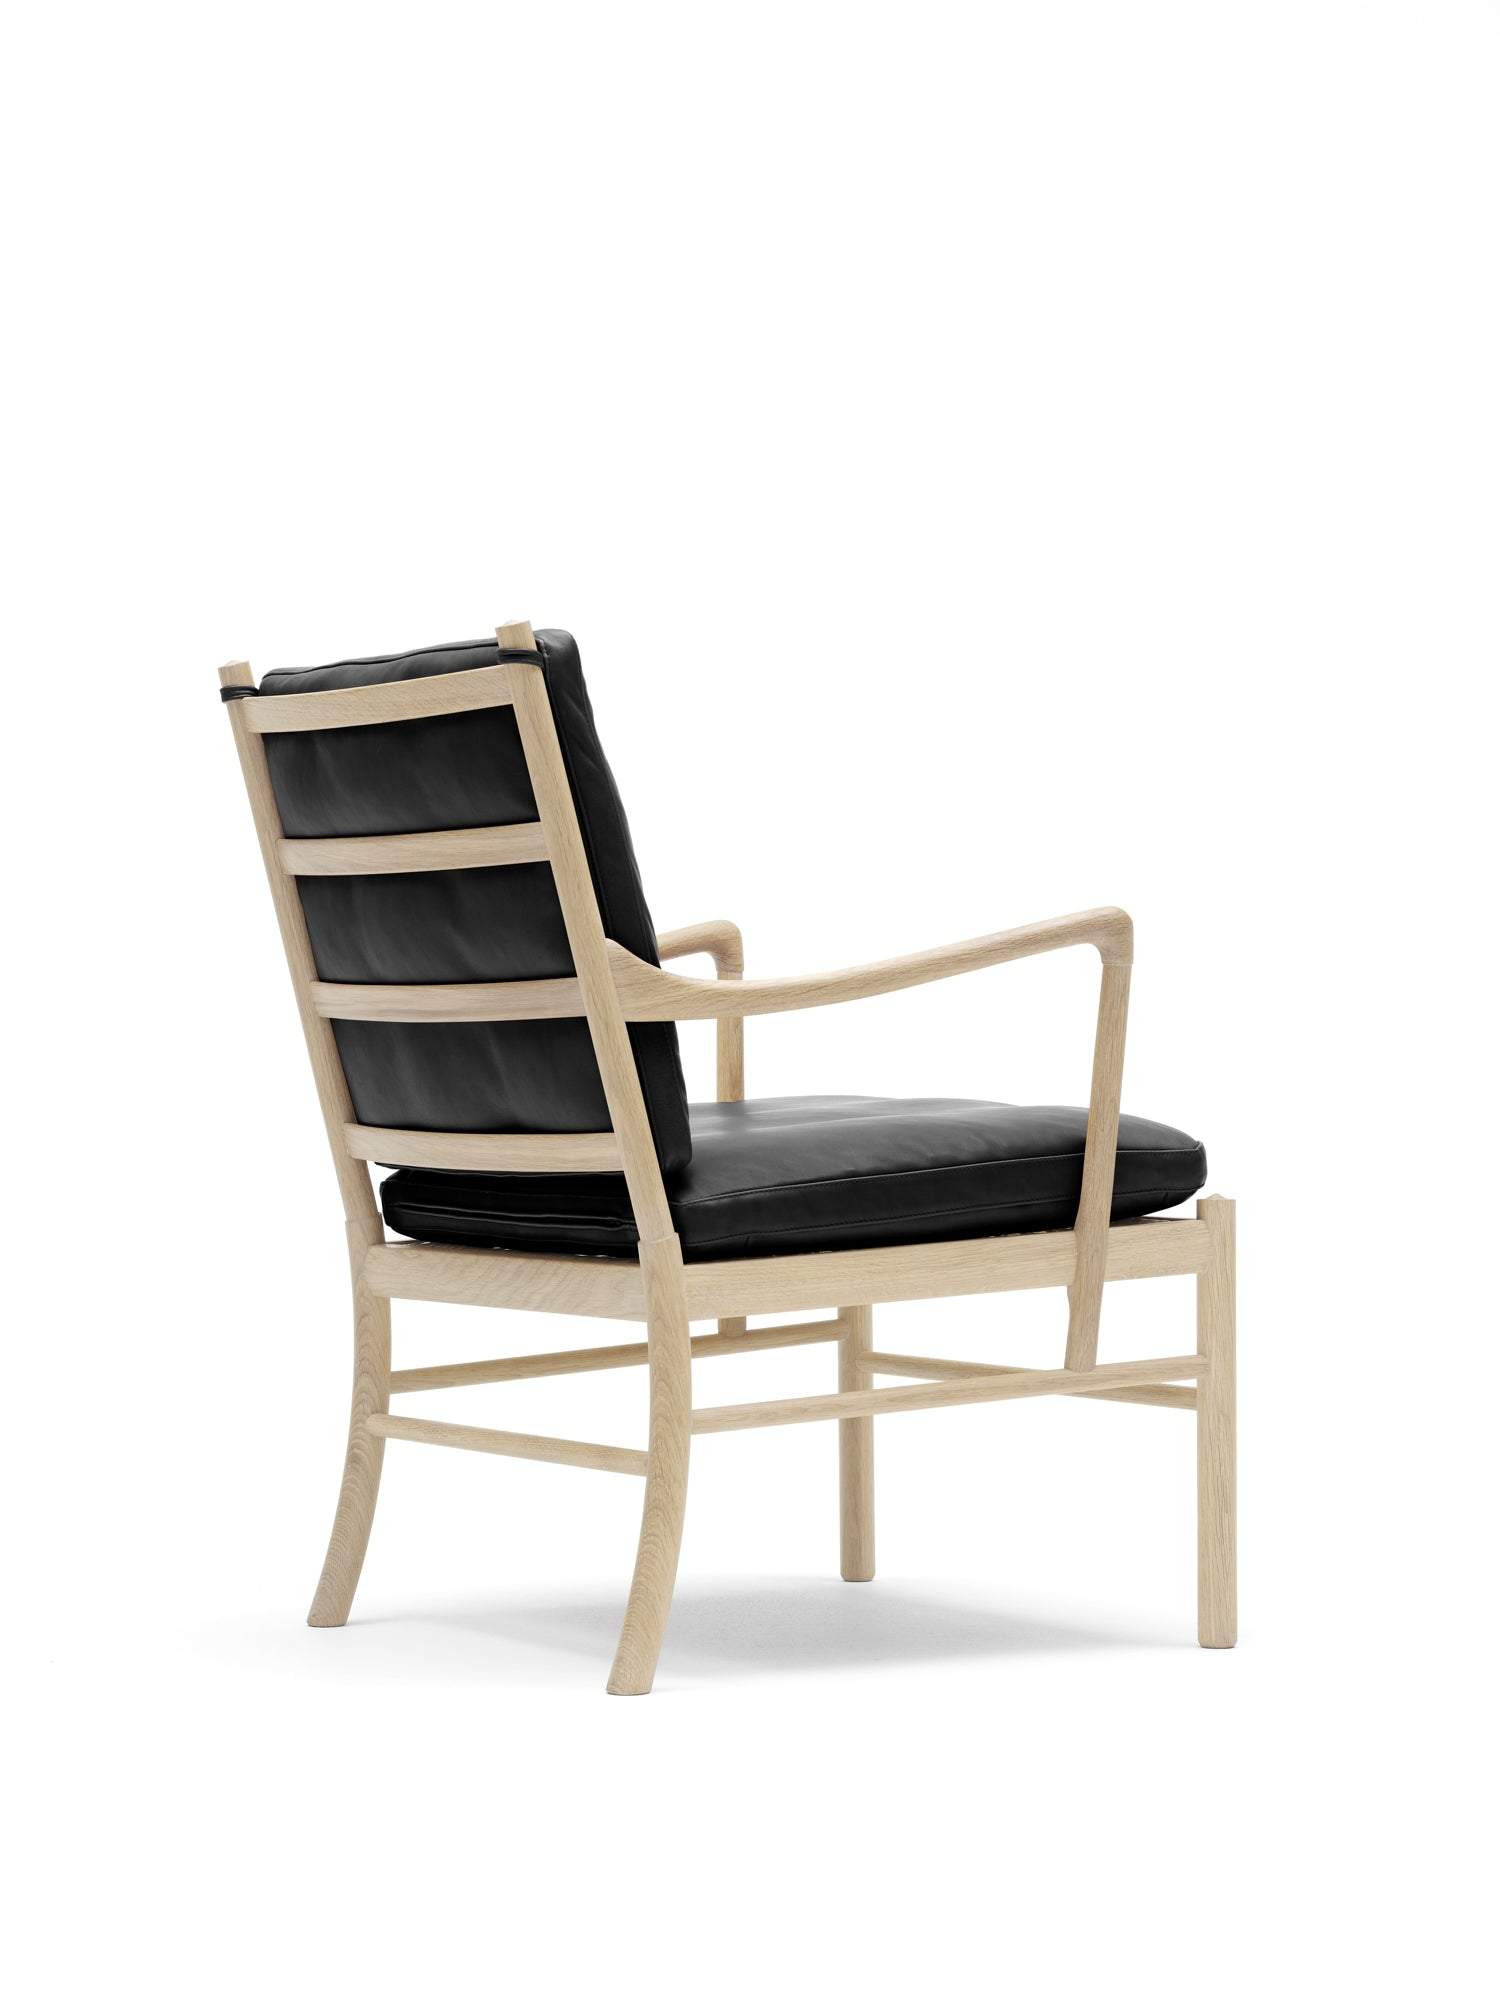 CARL HANSEN & SØN | OW149 Colonial Chair | Design: Ole Wanscher 1959 | Available in 3*-12 weeks, depending on wood/upholstery chosen